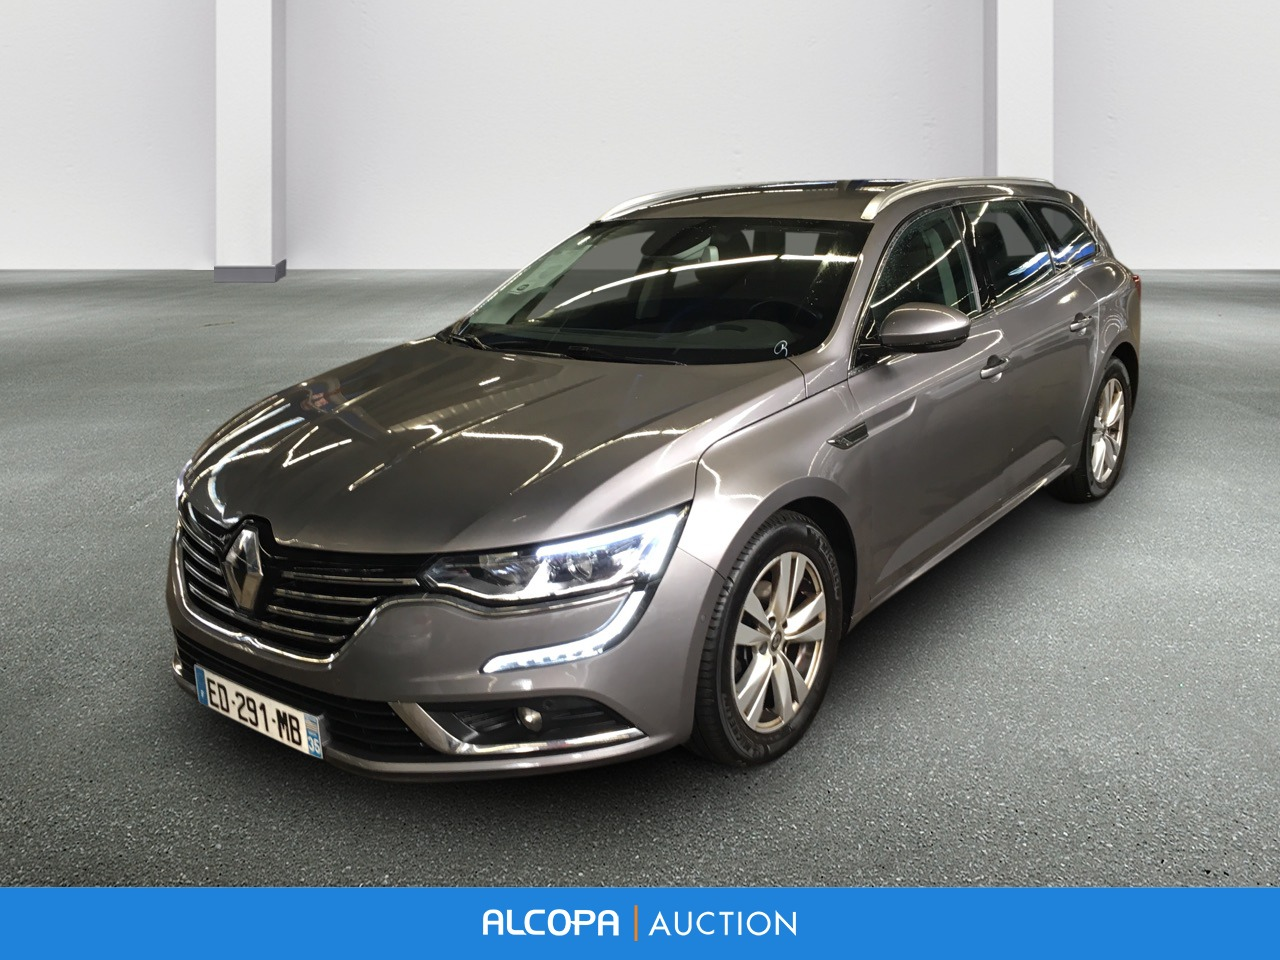 renault talisman estate business talisman estate dci 110 energy eco2 business edc alcopa auction. Black Bedroom Furniture Sets. Home Design Ideas